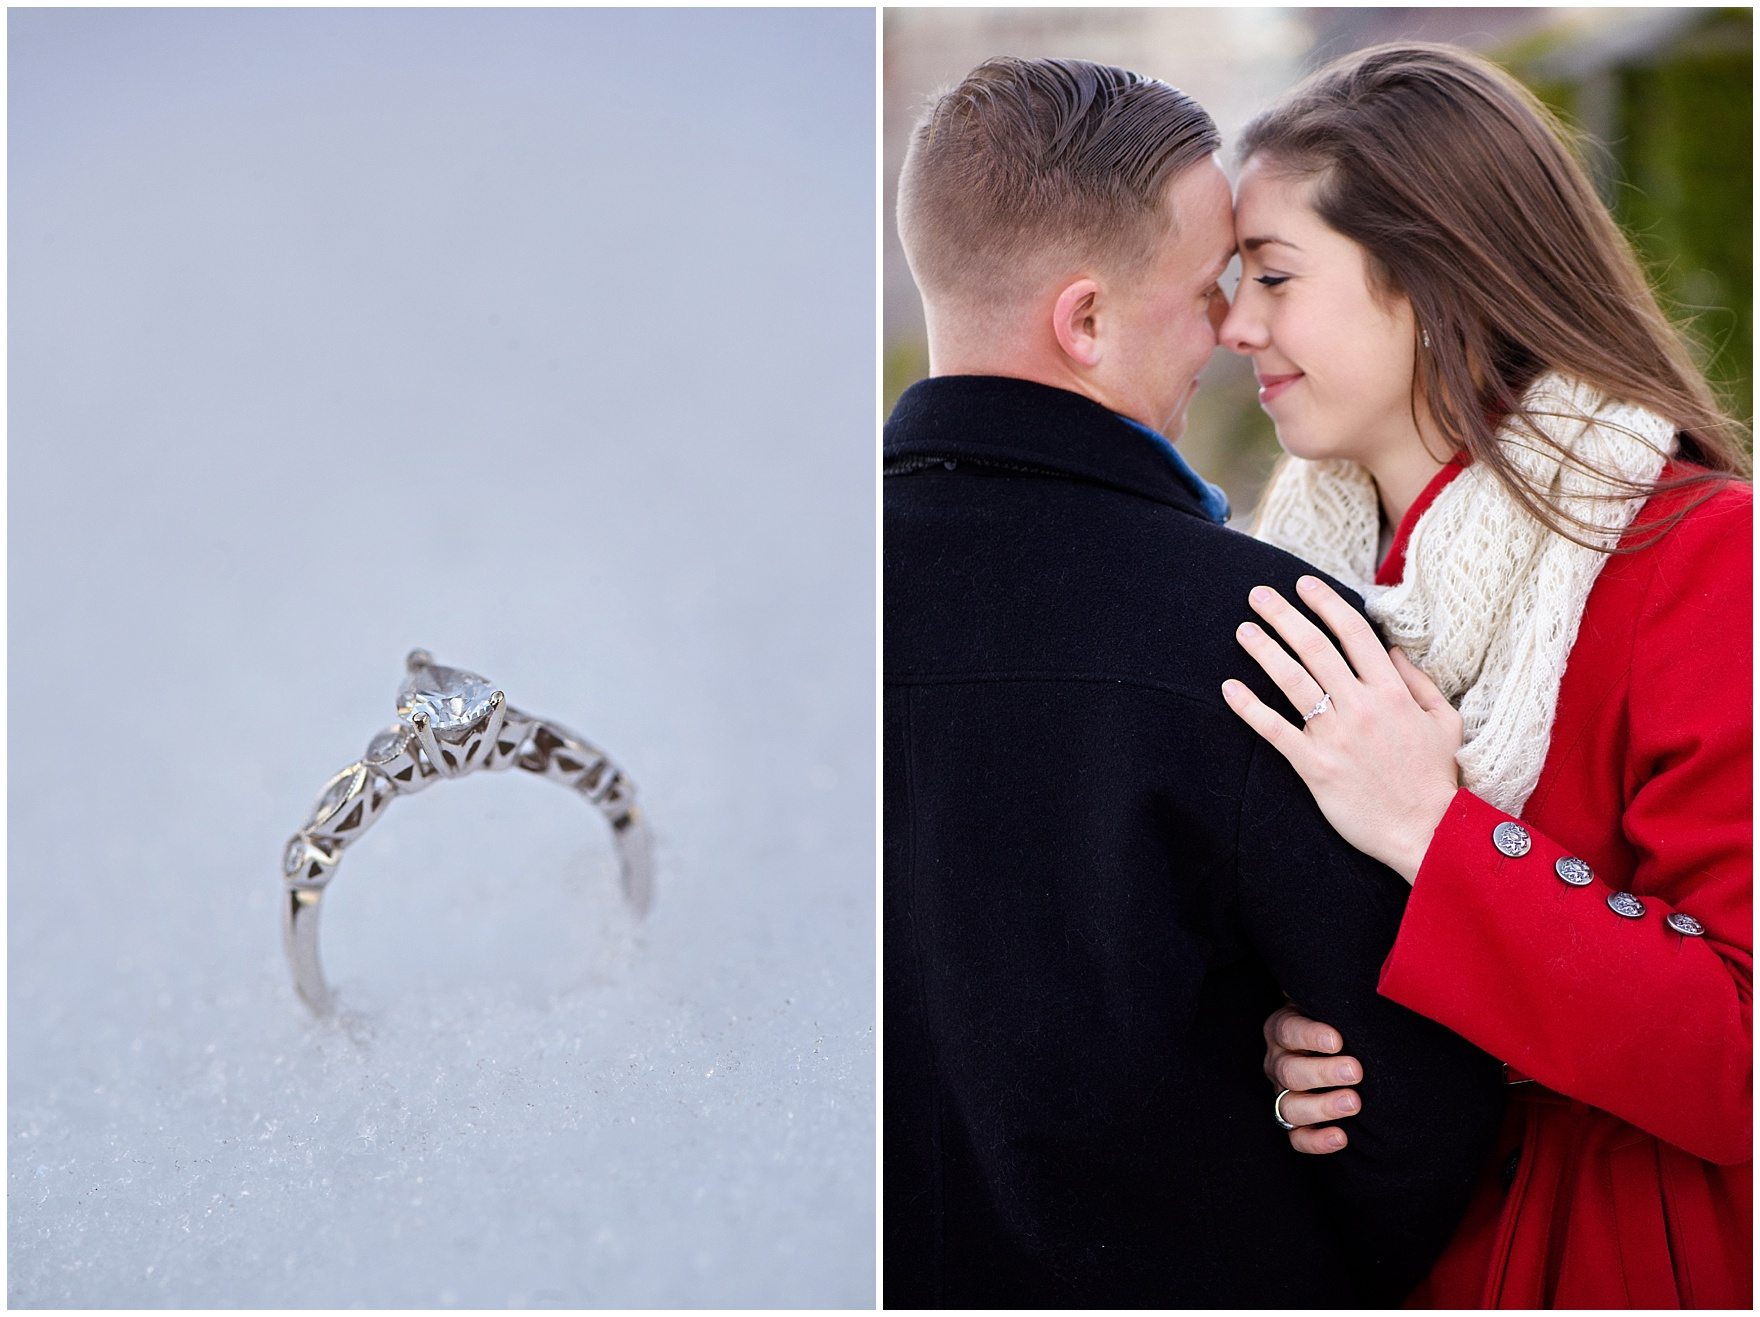 A close up photograph of an engagement ring in the show, taken during an Art Institute of Chicago engagement photography session.